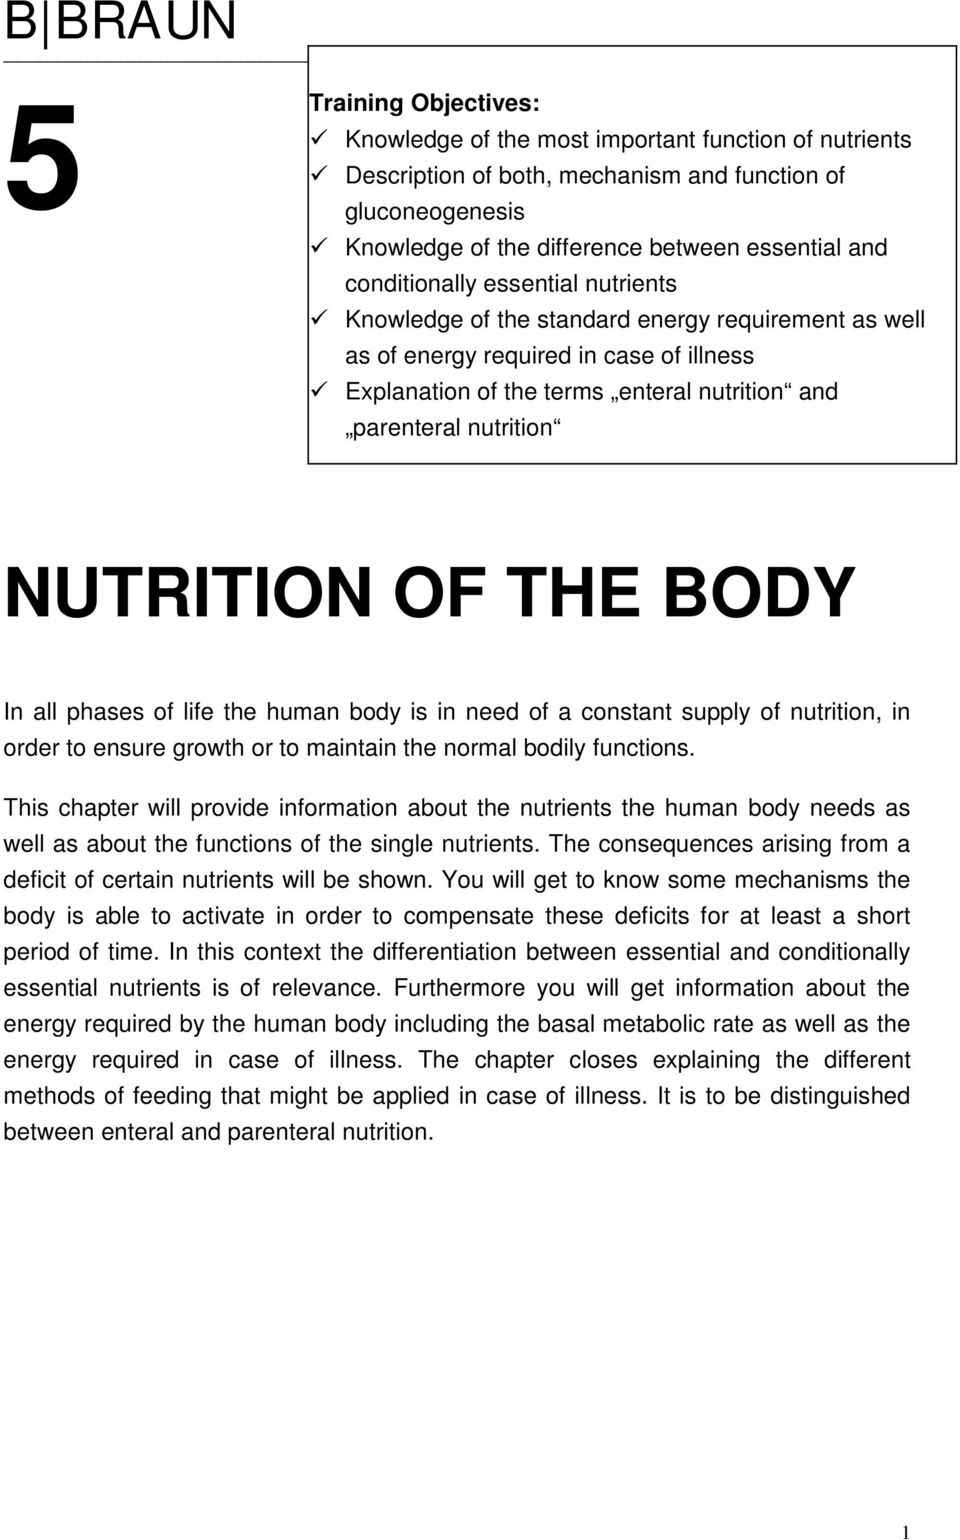 Explanation of the terms enteral nutrition and parenteral nutrition NUTRITION OF THE BODY In all phases of life the human body is in need of a constant supply of nutrition, in order to ensure growth